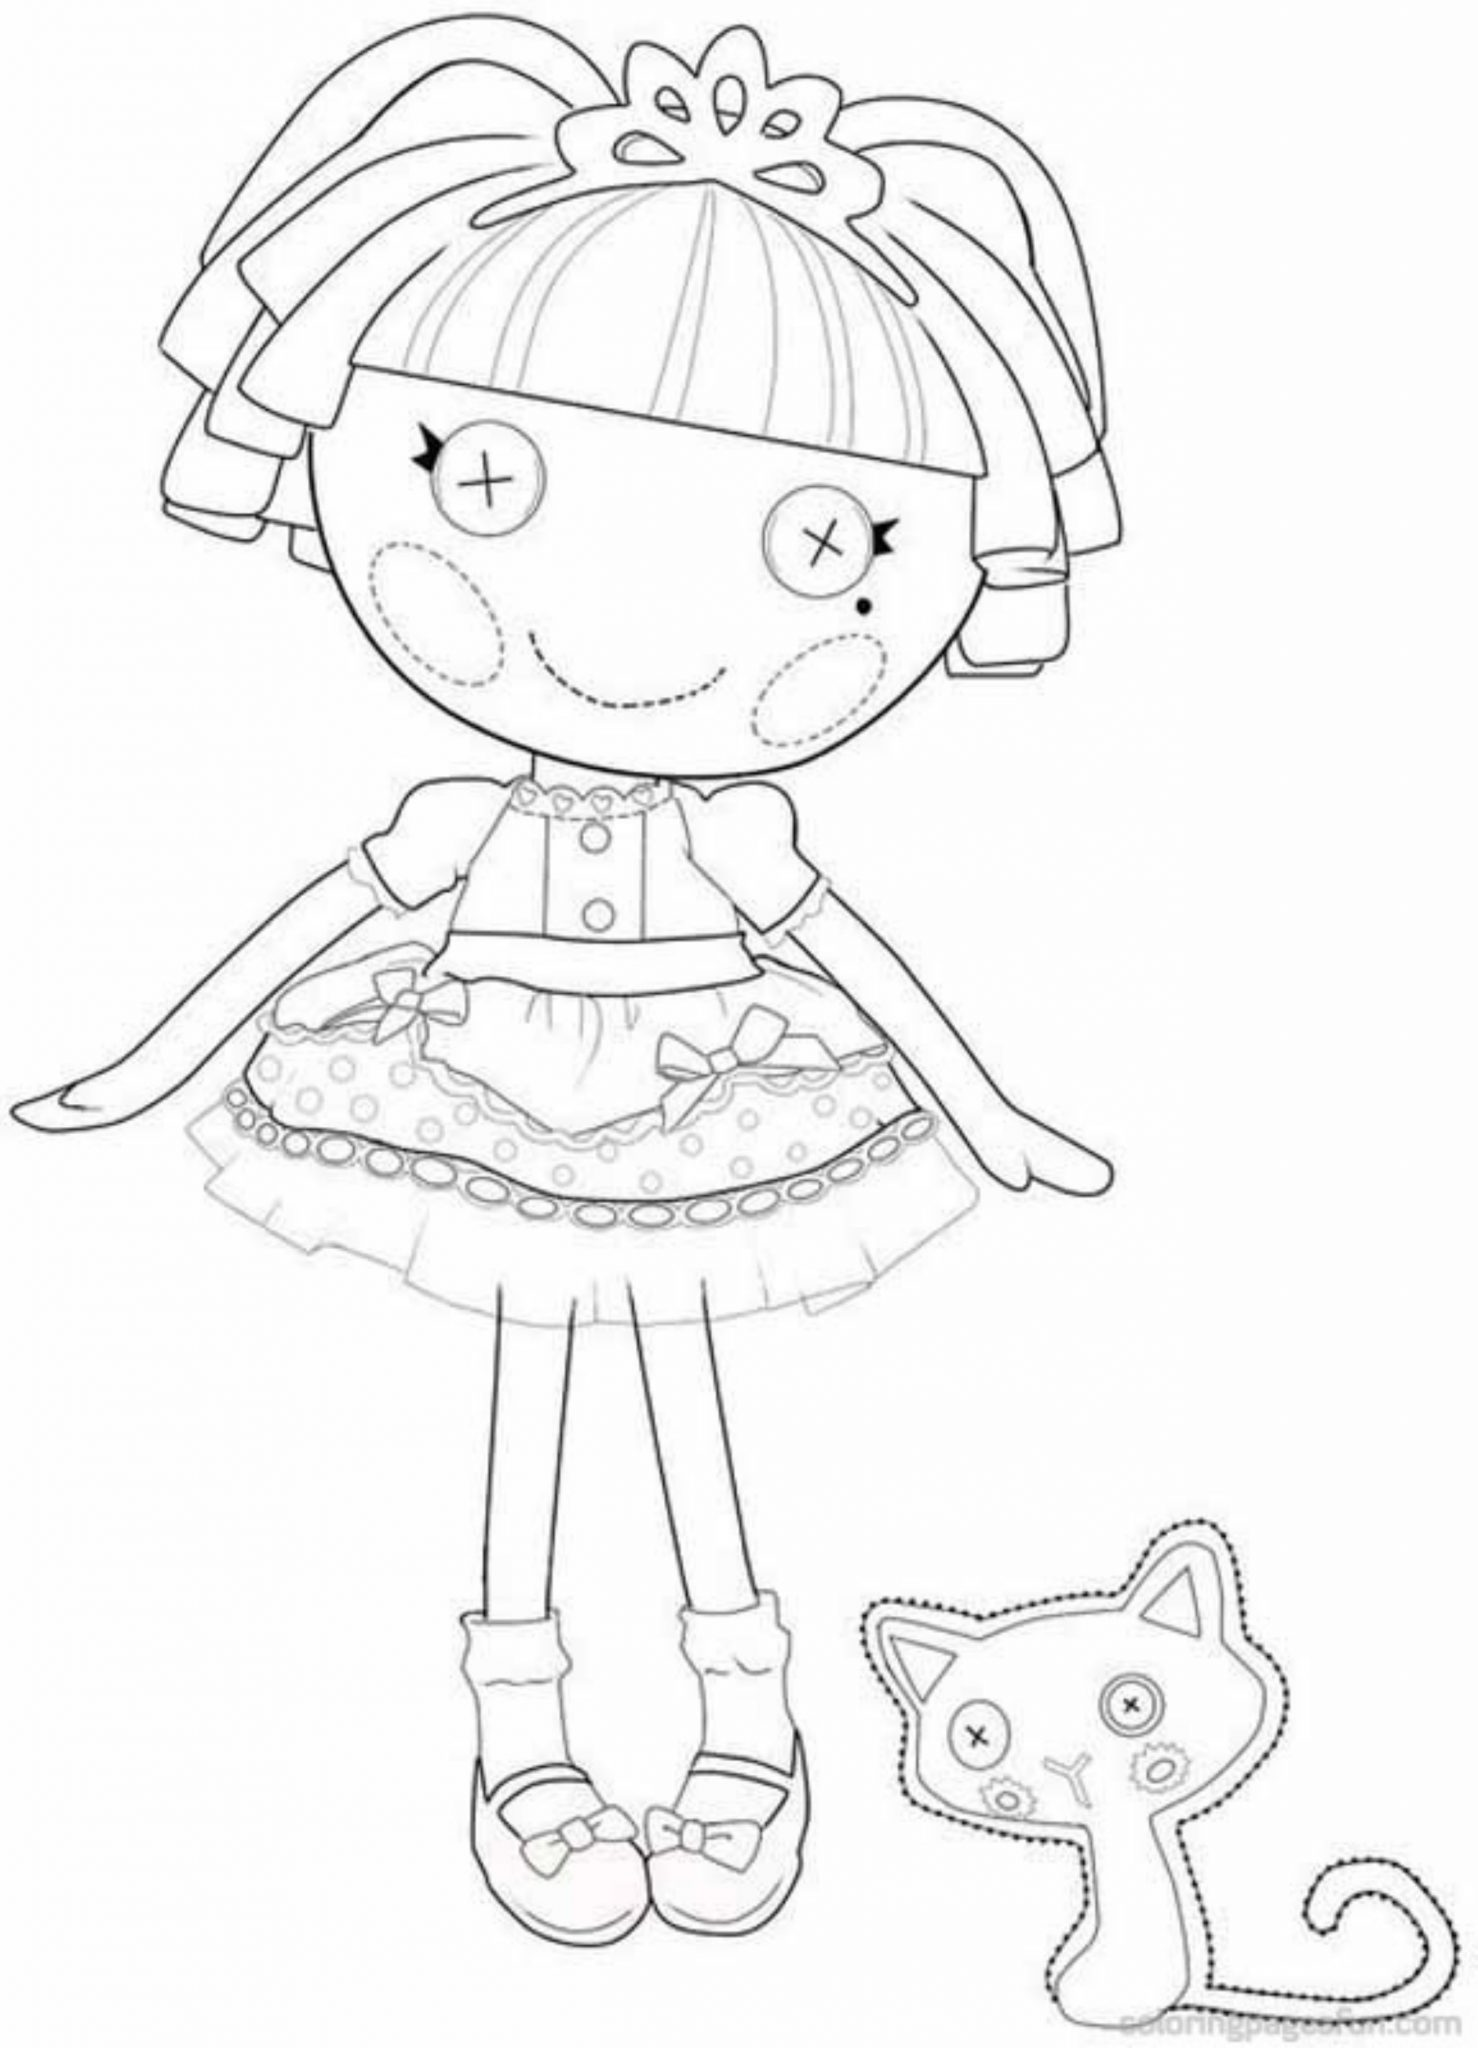 Gallery Of Giving Task For Kids To Have Lalaloopsy Coloring Pages